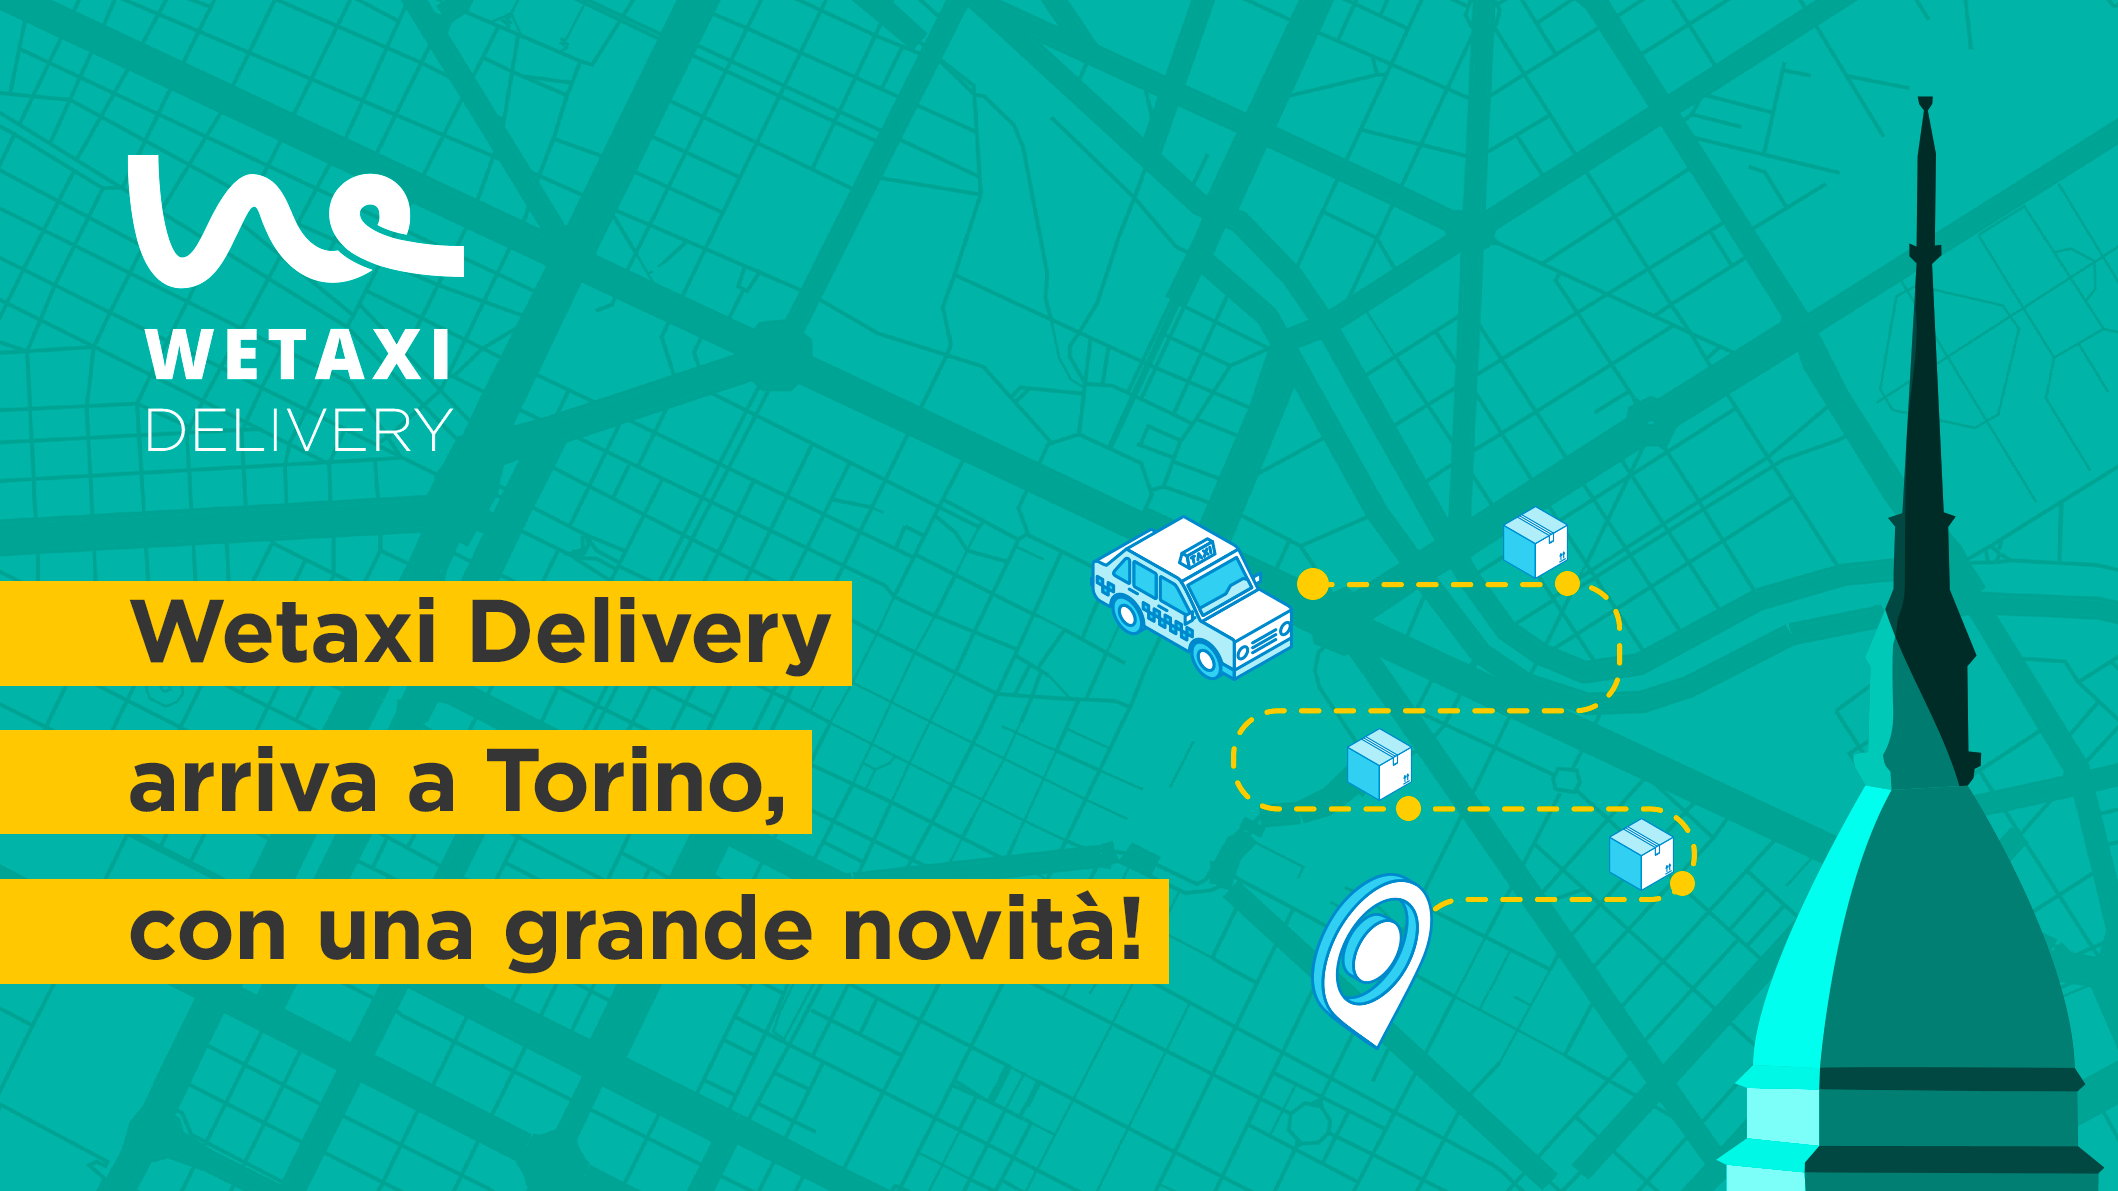 Wetaxi Delivery arriva a Torino